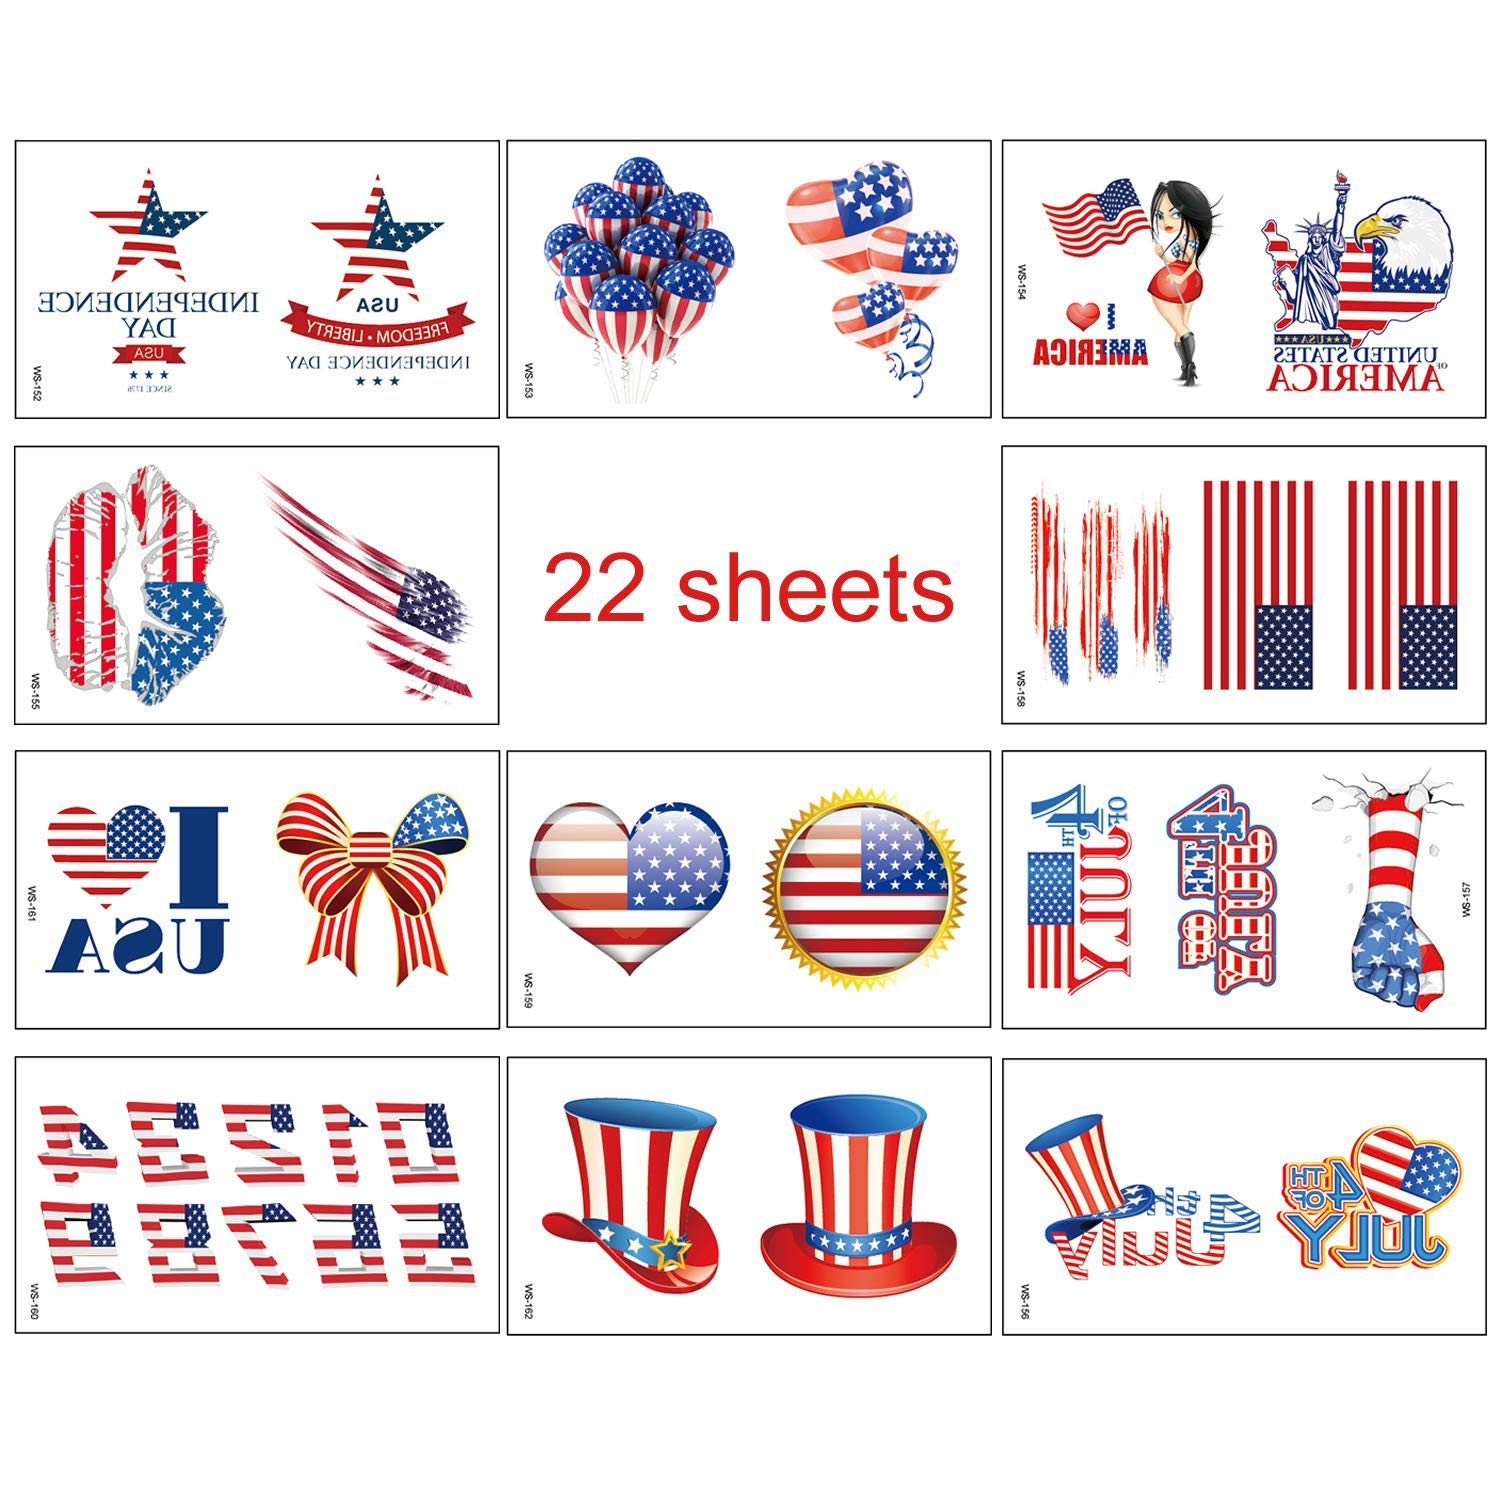 Medeer 4th of July Decorations Patriotic Temporary Tattoos 22 Sheets for Memorial Day, Independence Day, Red White and Blue Party Supplies, Fourth of ...